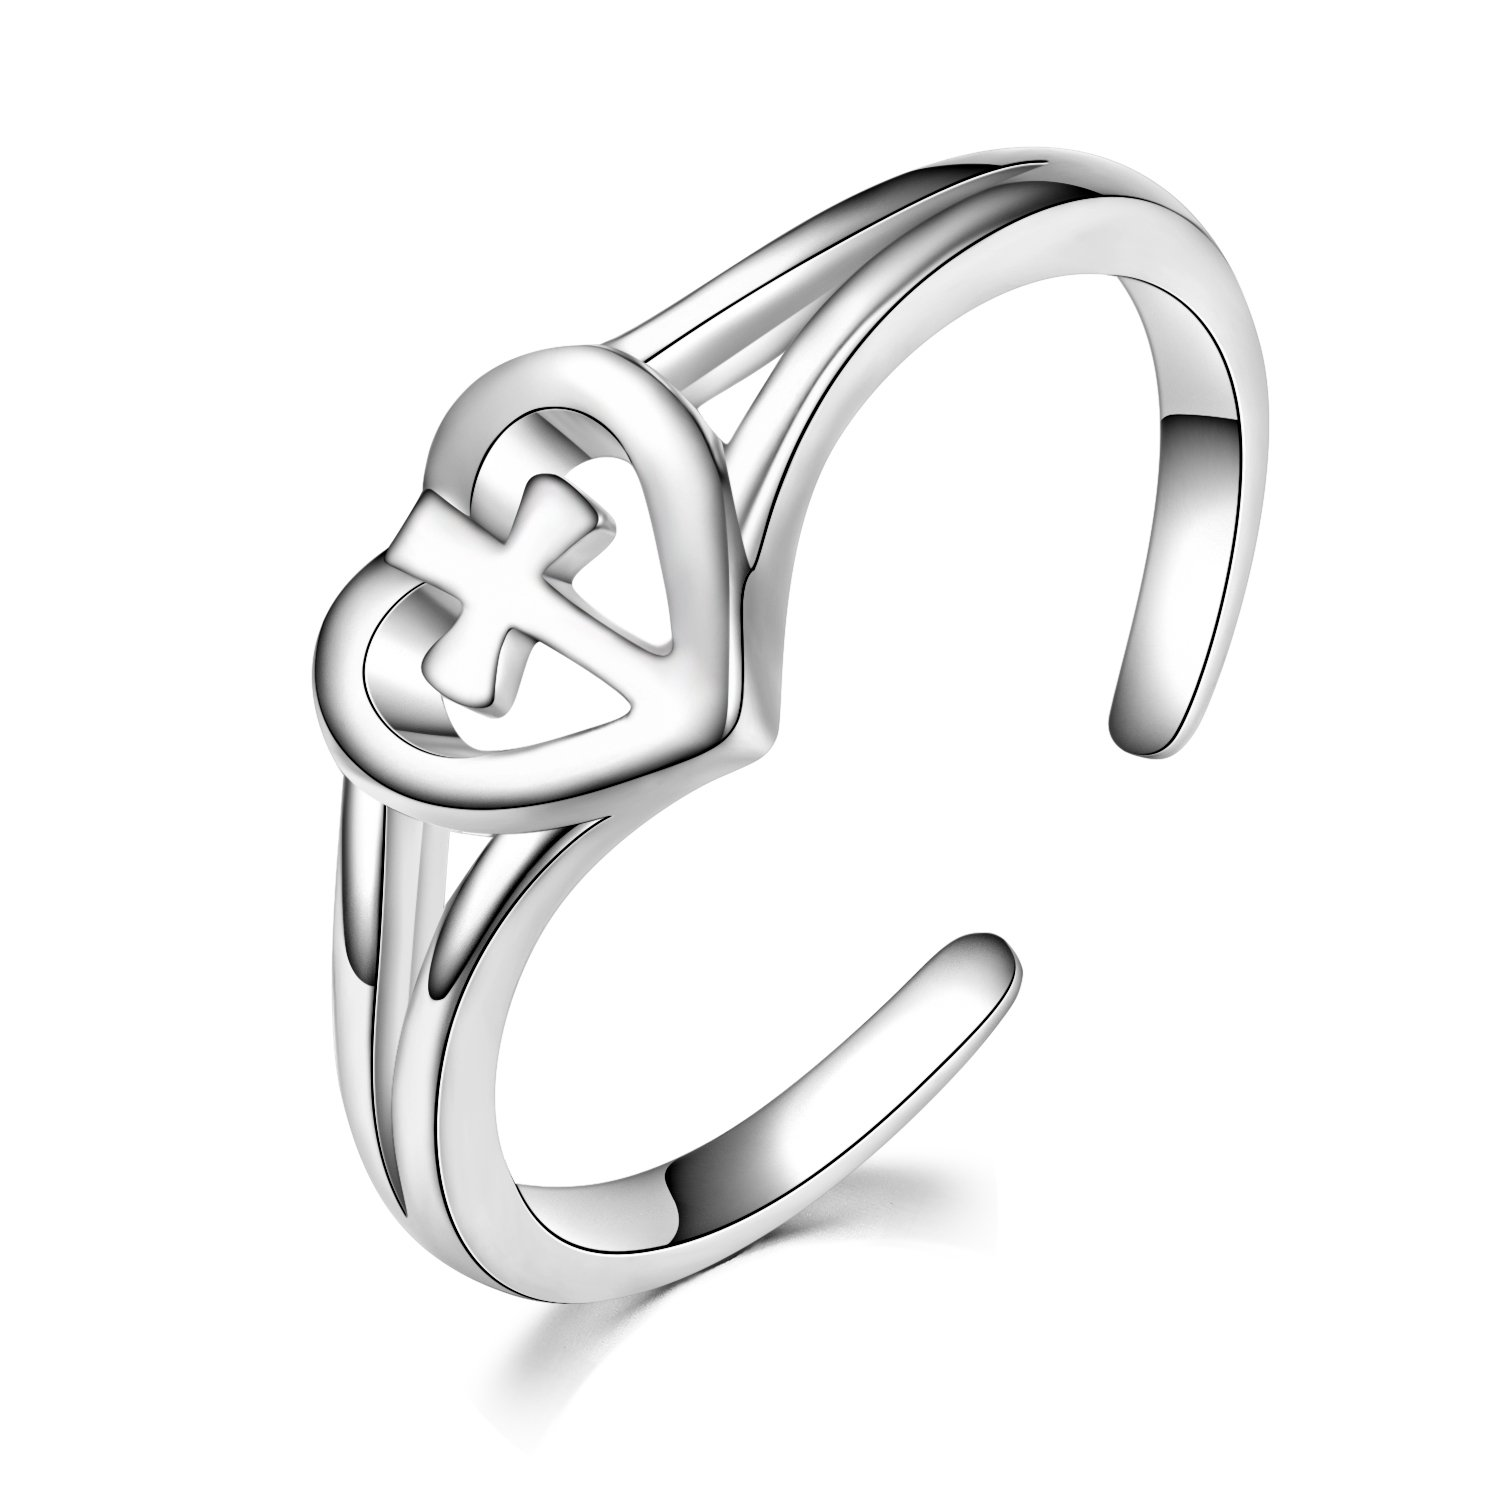 Love Cross Rings Sterling Silver Adjustable Open Polished Christian Heart Promise Anniversary Rings for Her, Size 7